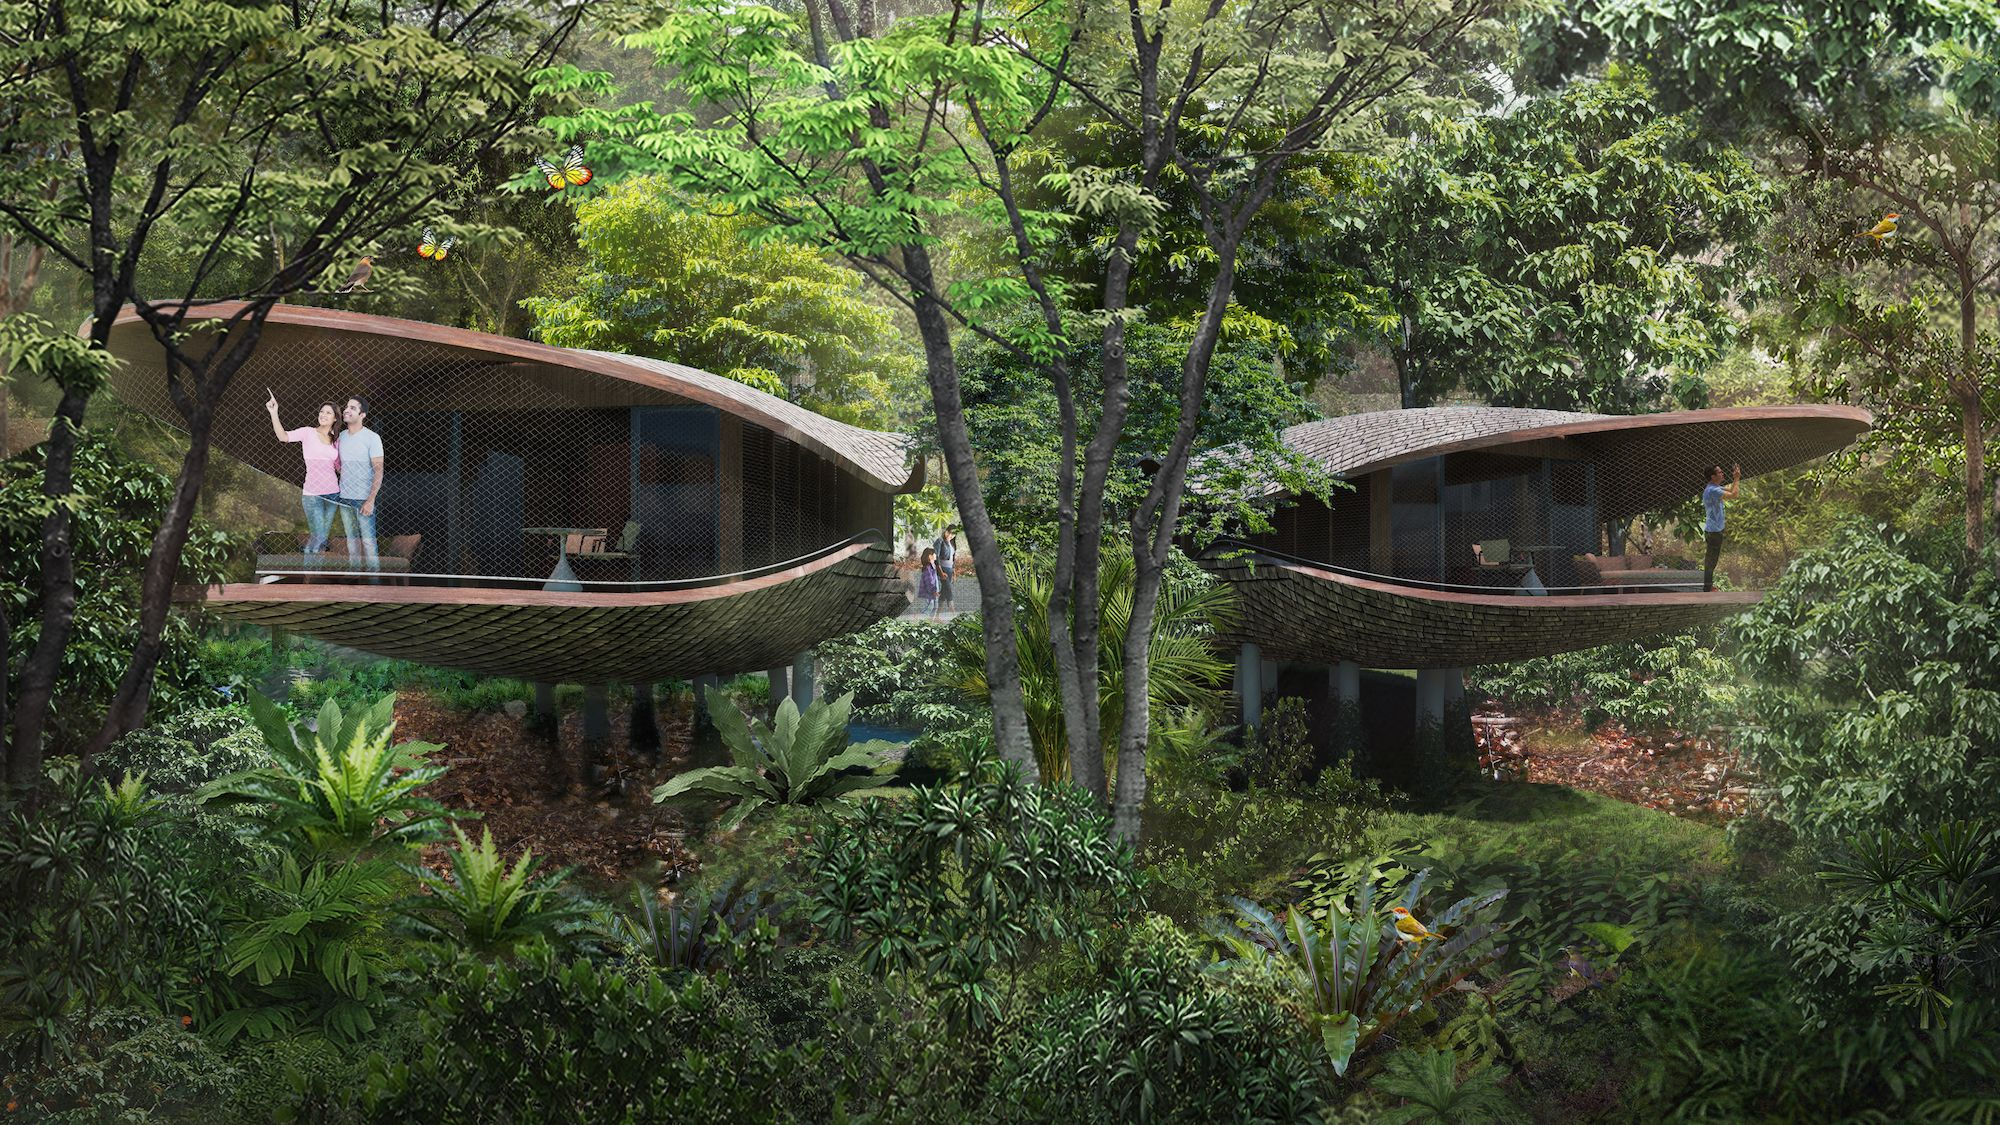 This Eco-Friendly Rainforest Resort Opening in Singapore Will Consist of 24 Tree Houses With 338 Rooms